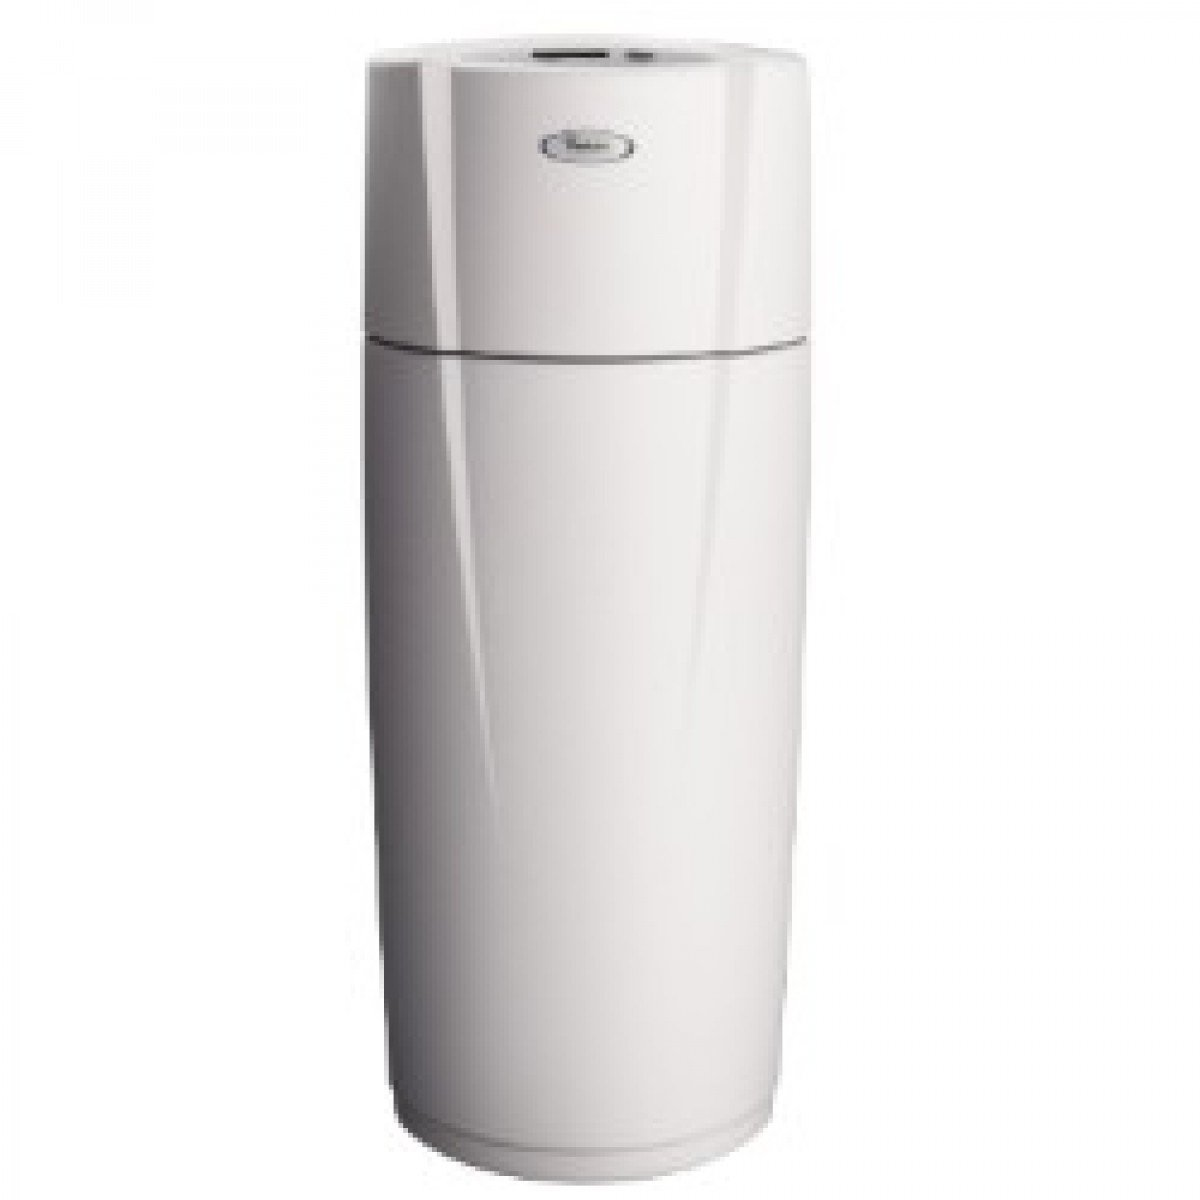 Whirlpool Central Water Filtration System